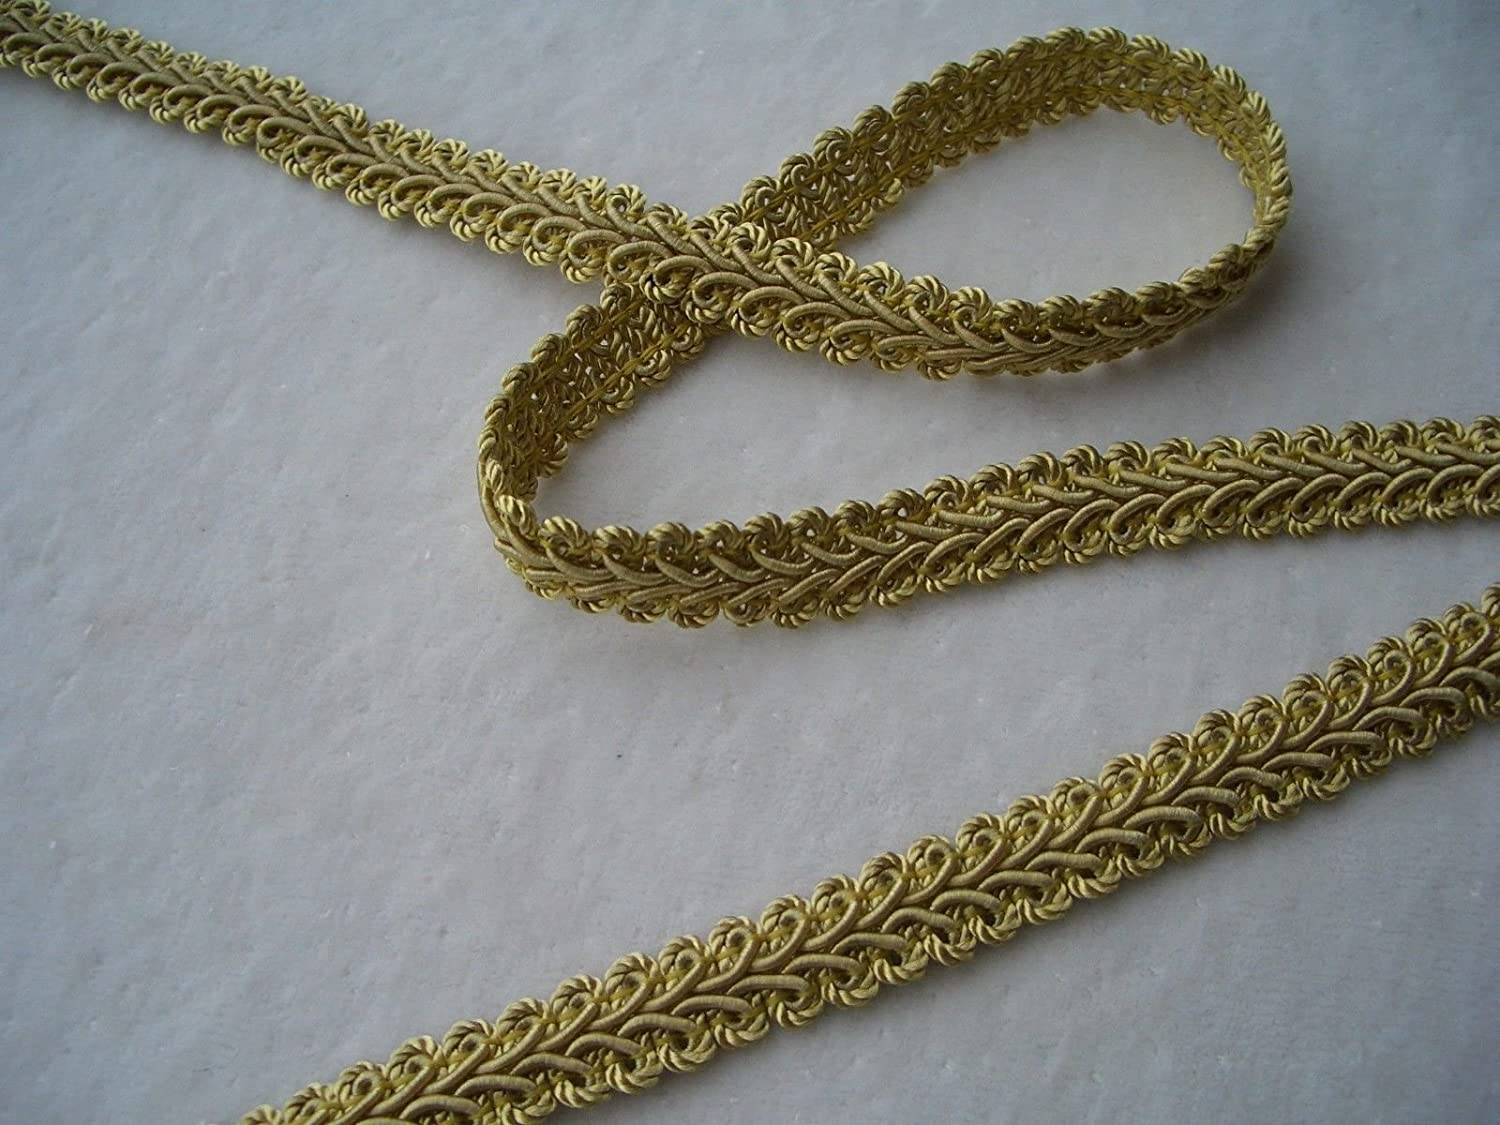 14 Yards of Beautiful 1//2 Wide French Style Braid Gimp Trim ~ Your Choice of 12 Colors Antique Gold